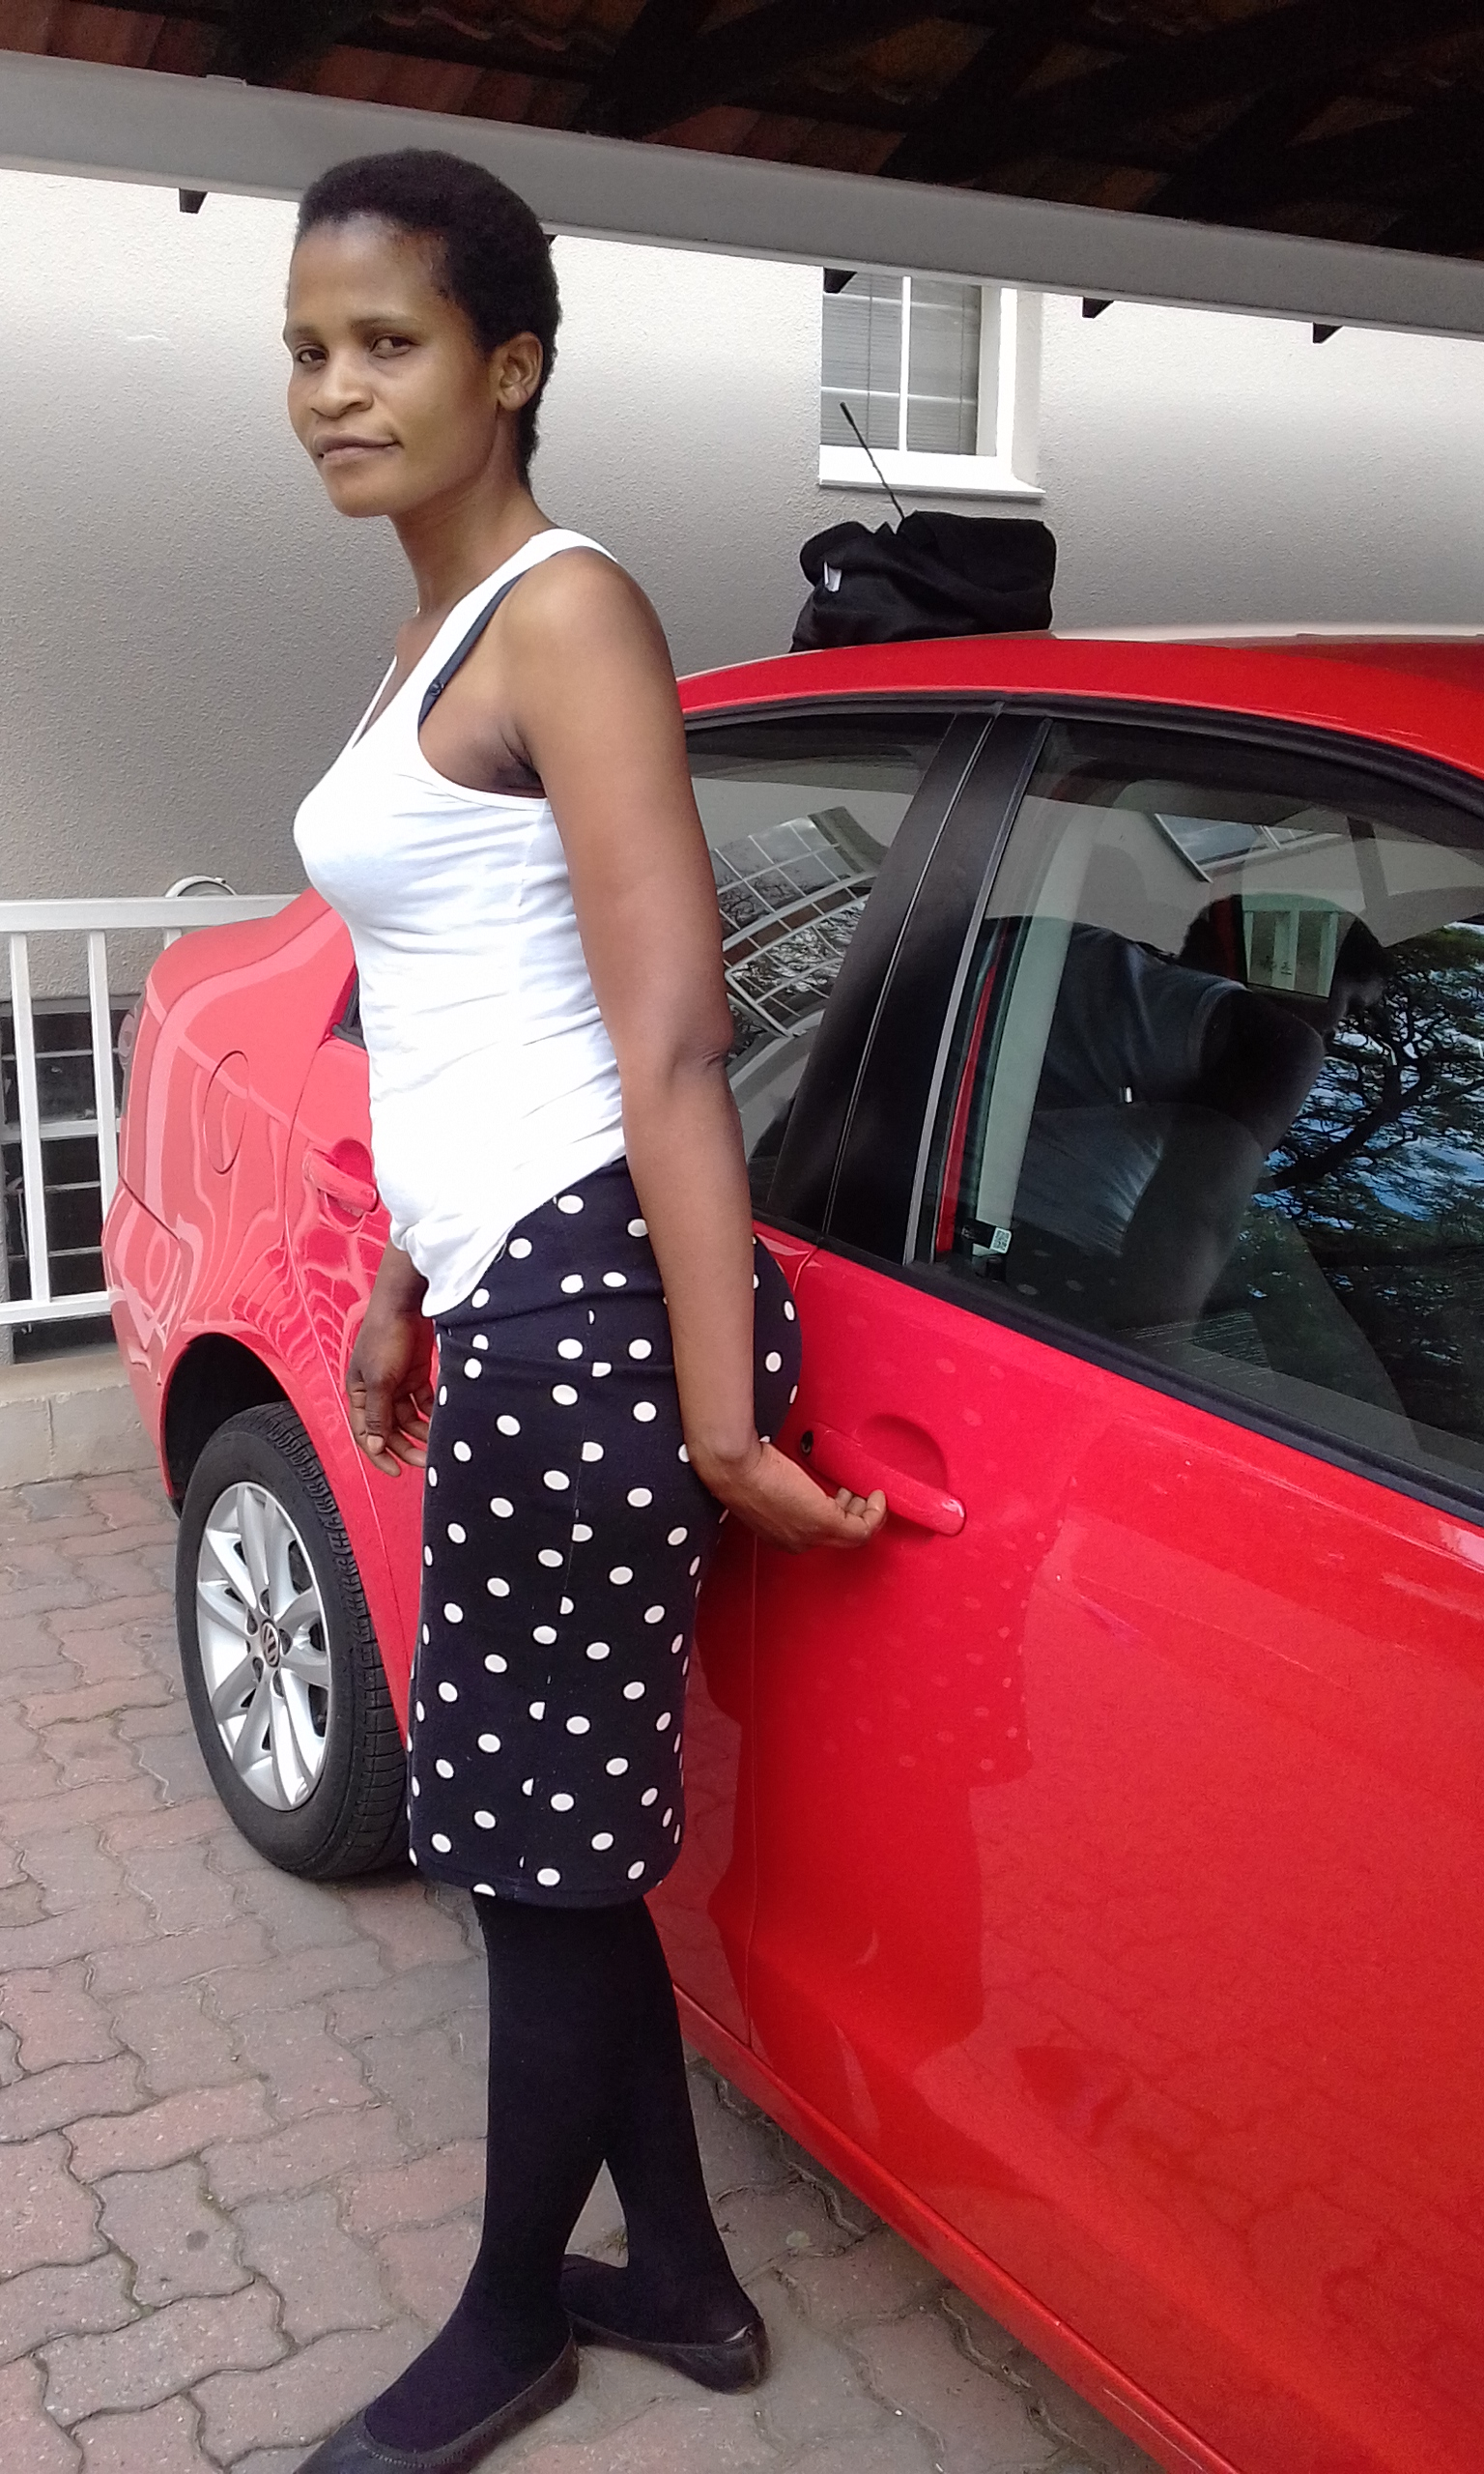 Zim maid,nanny,cleaner,cook,care-giver(all rounder) needs stay in or stay out